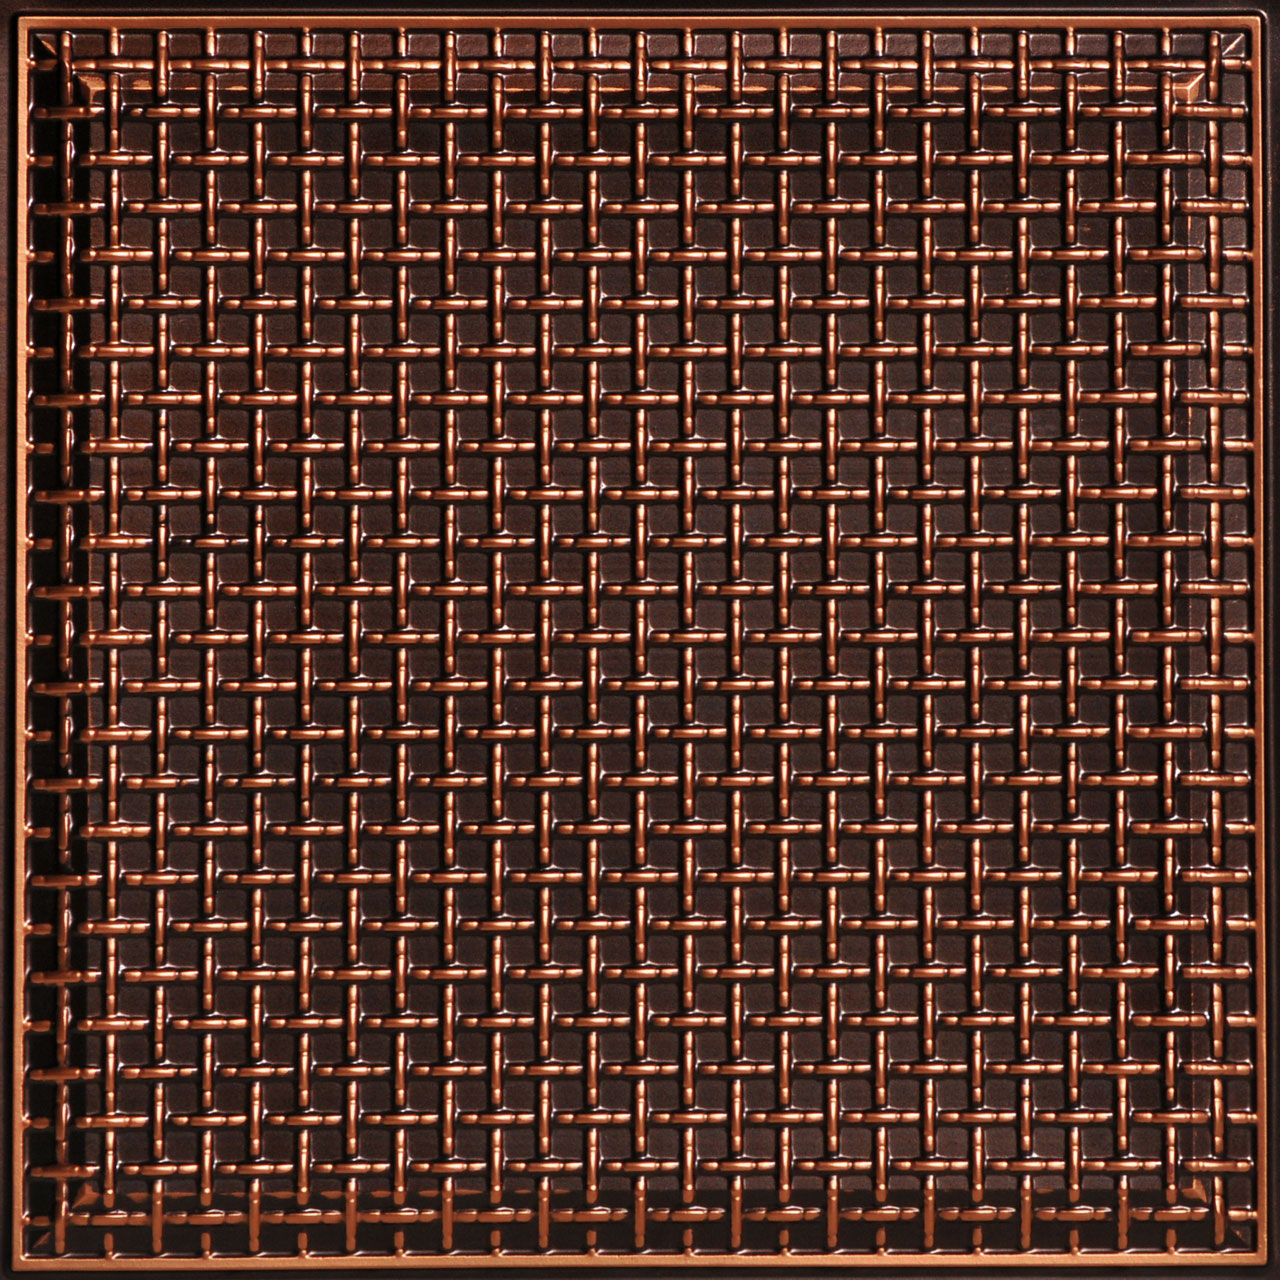 Rustic Lattice 2 ft. x 2 ft. PVC Glue-up or Lay in Ceiling Tile in Antique Copper